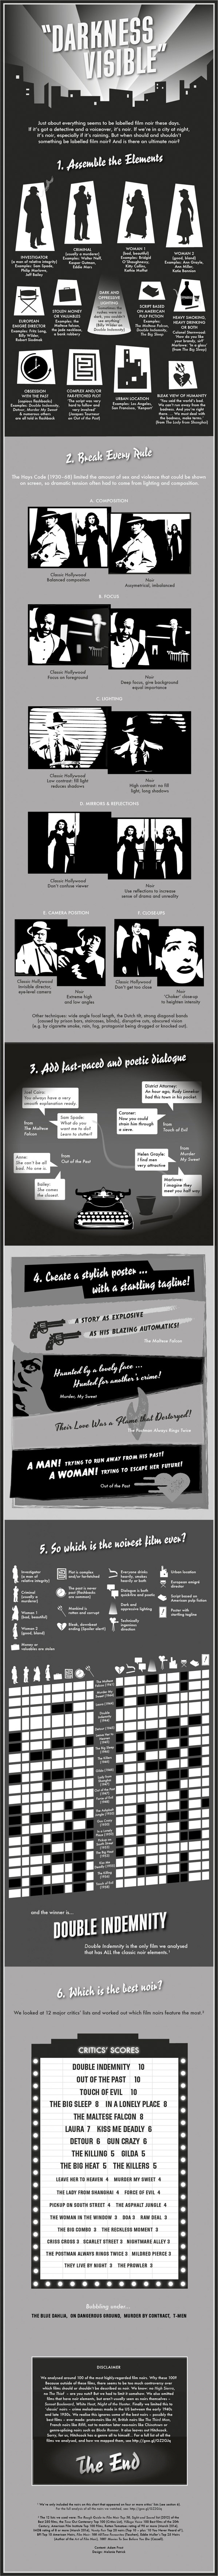 What makes a film noir?